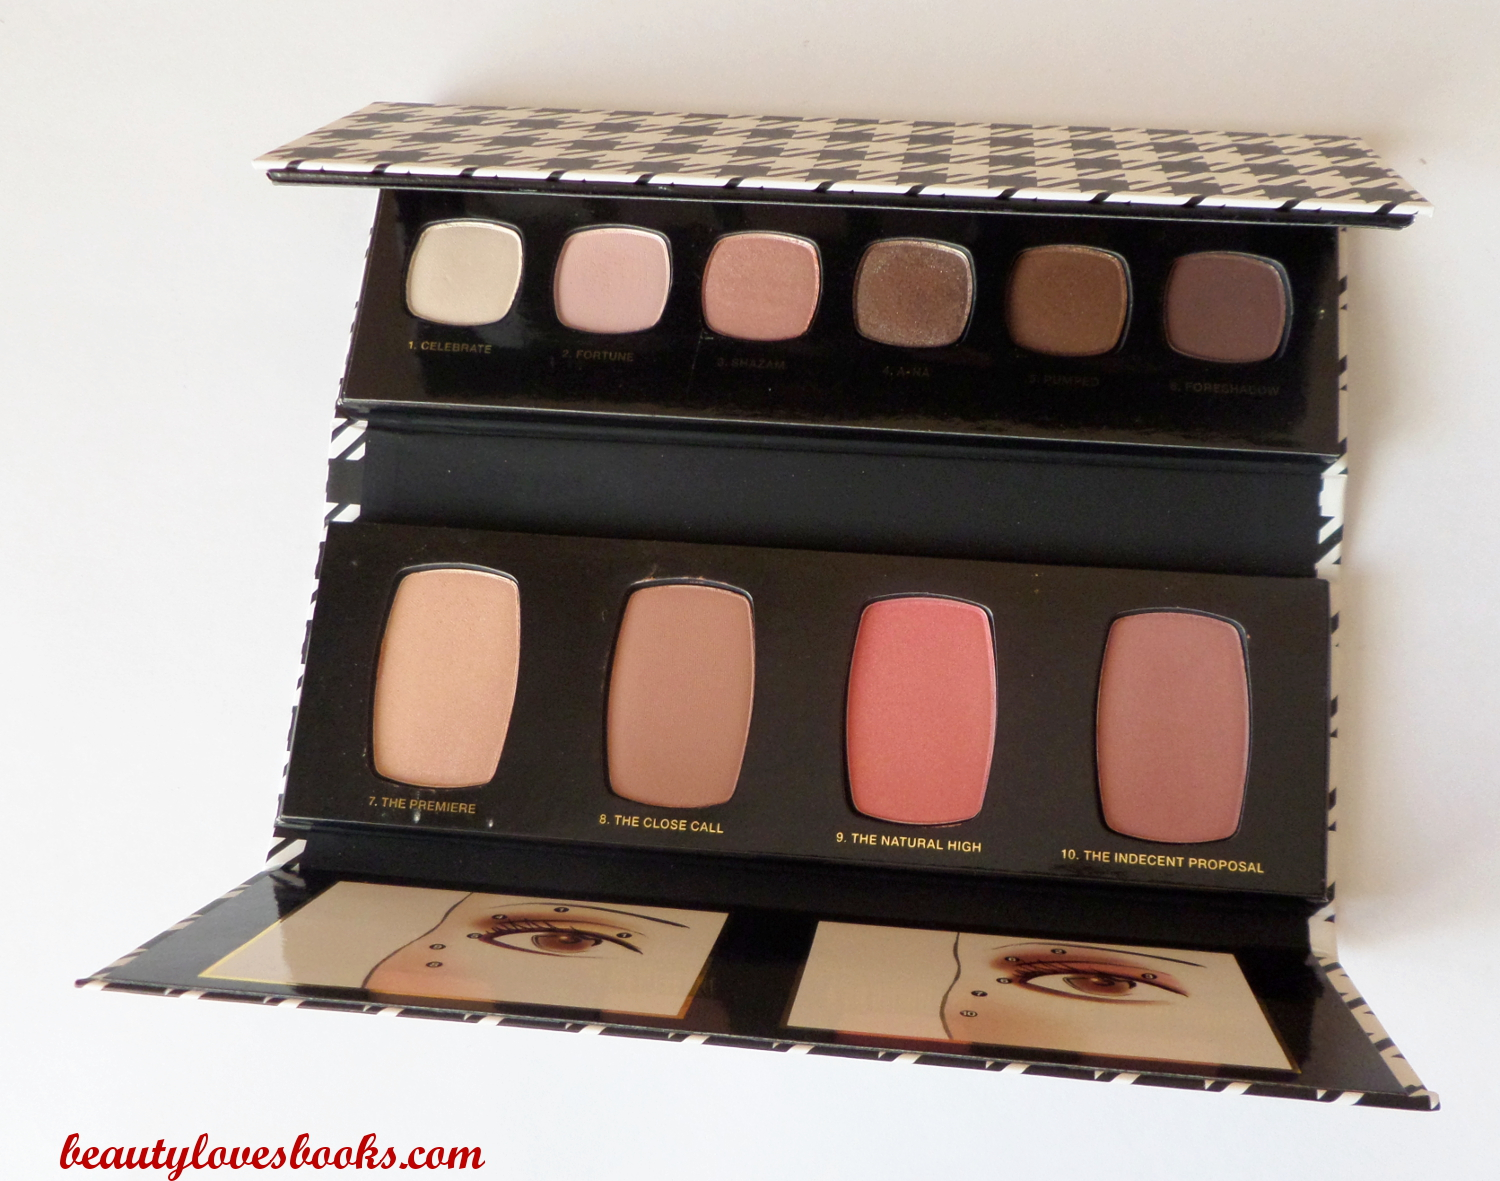 Bare minerals The magic act palette